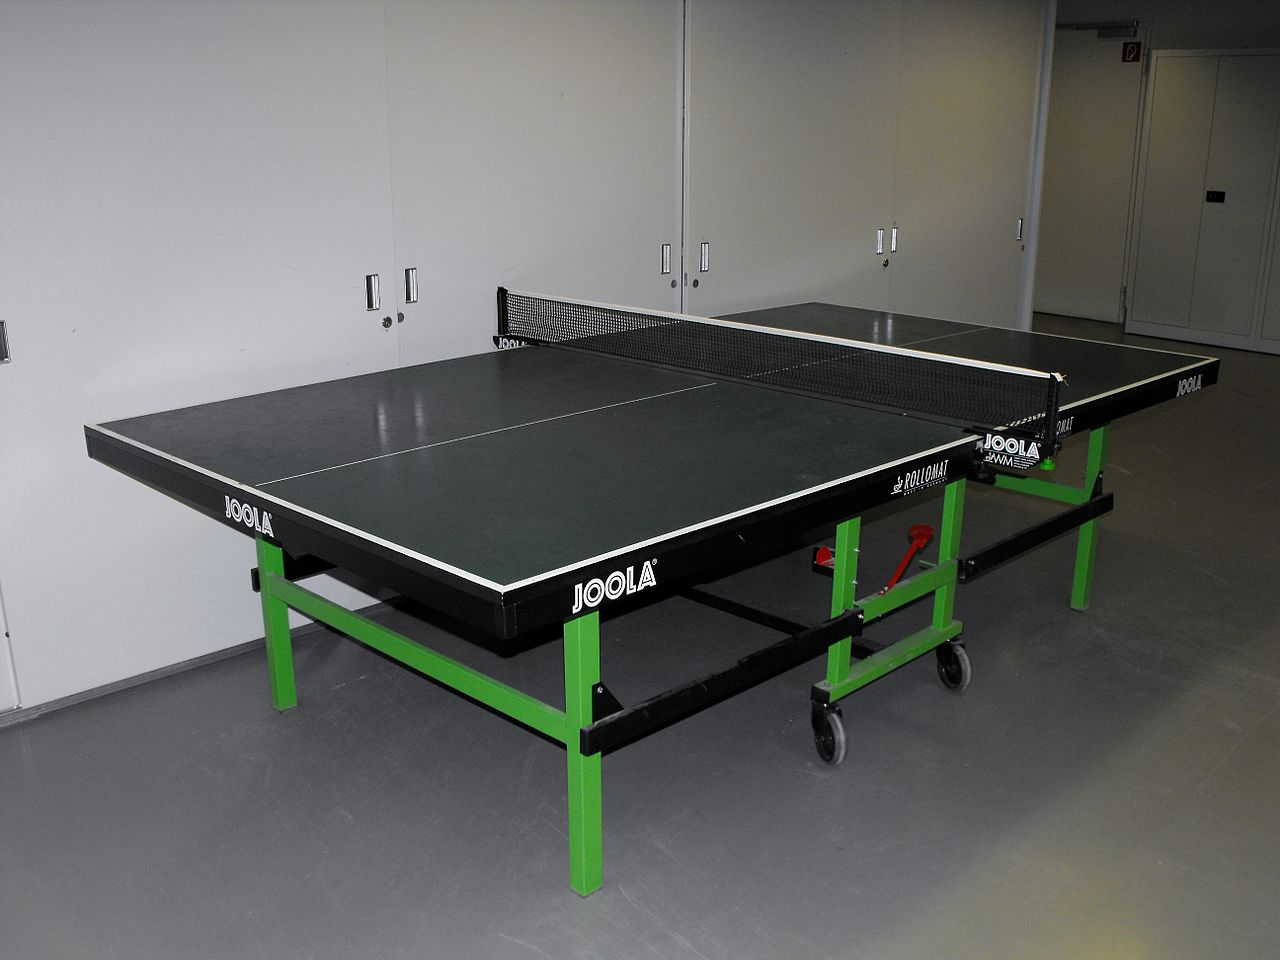 File table tennis table 007 jpg wikimedia commons - Dimensions of a table tennis board ...